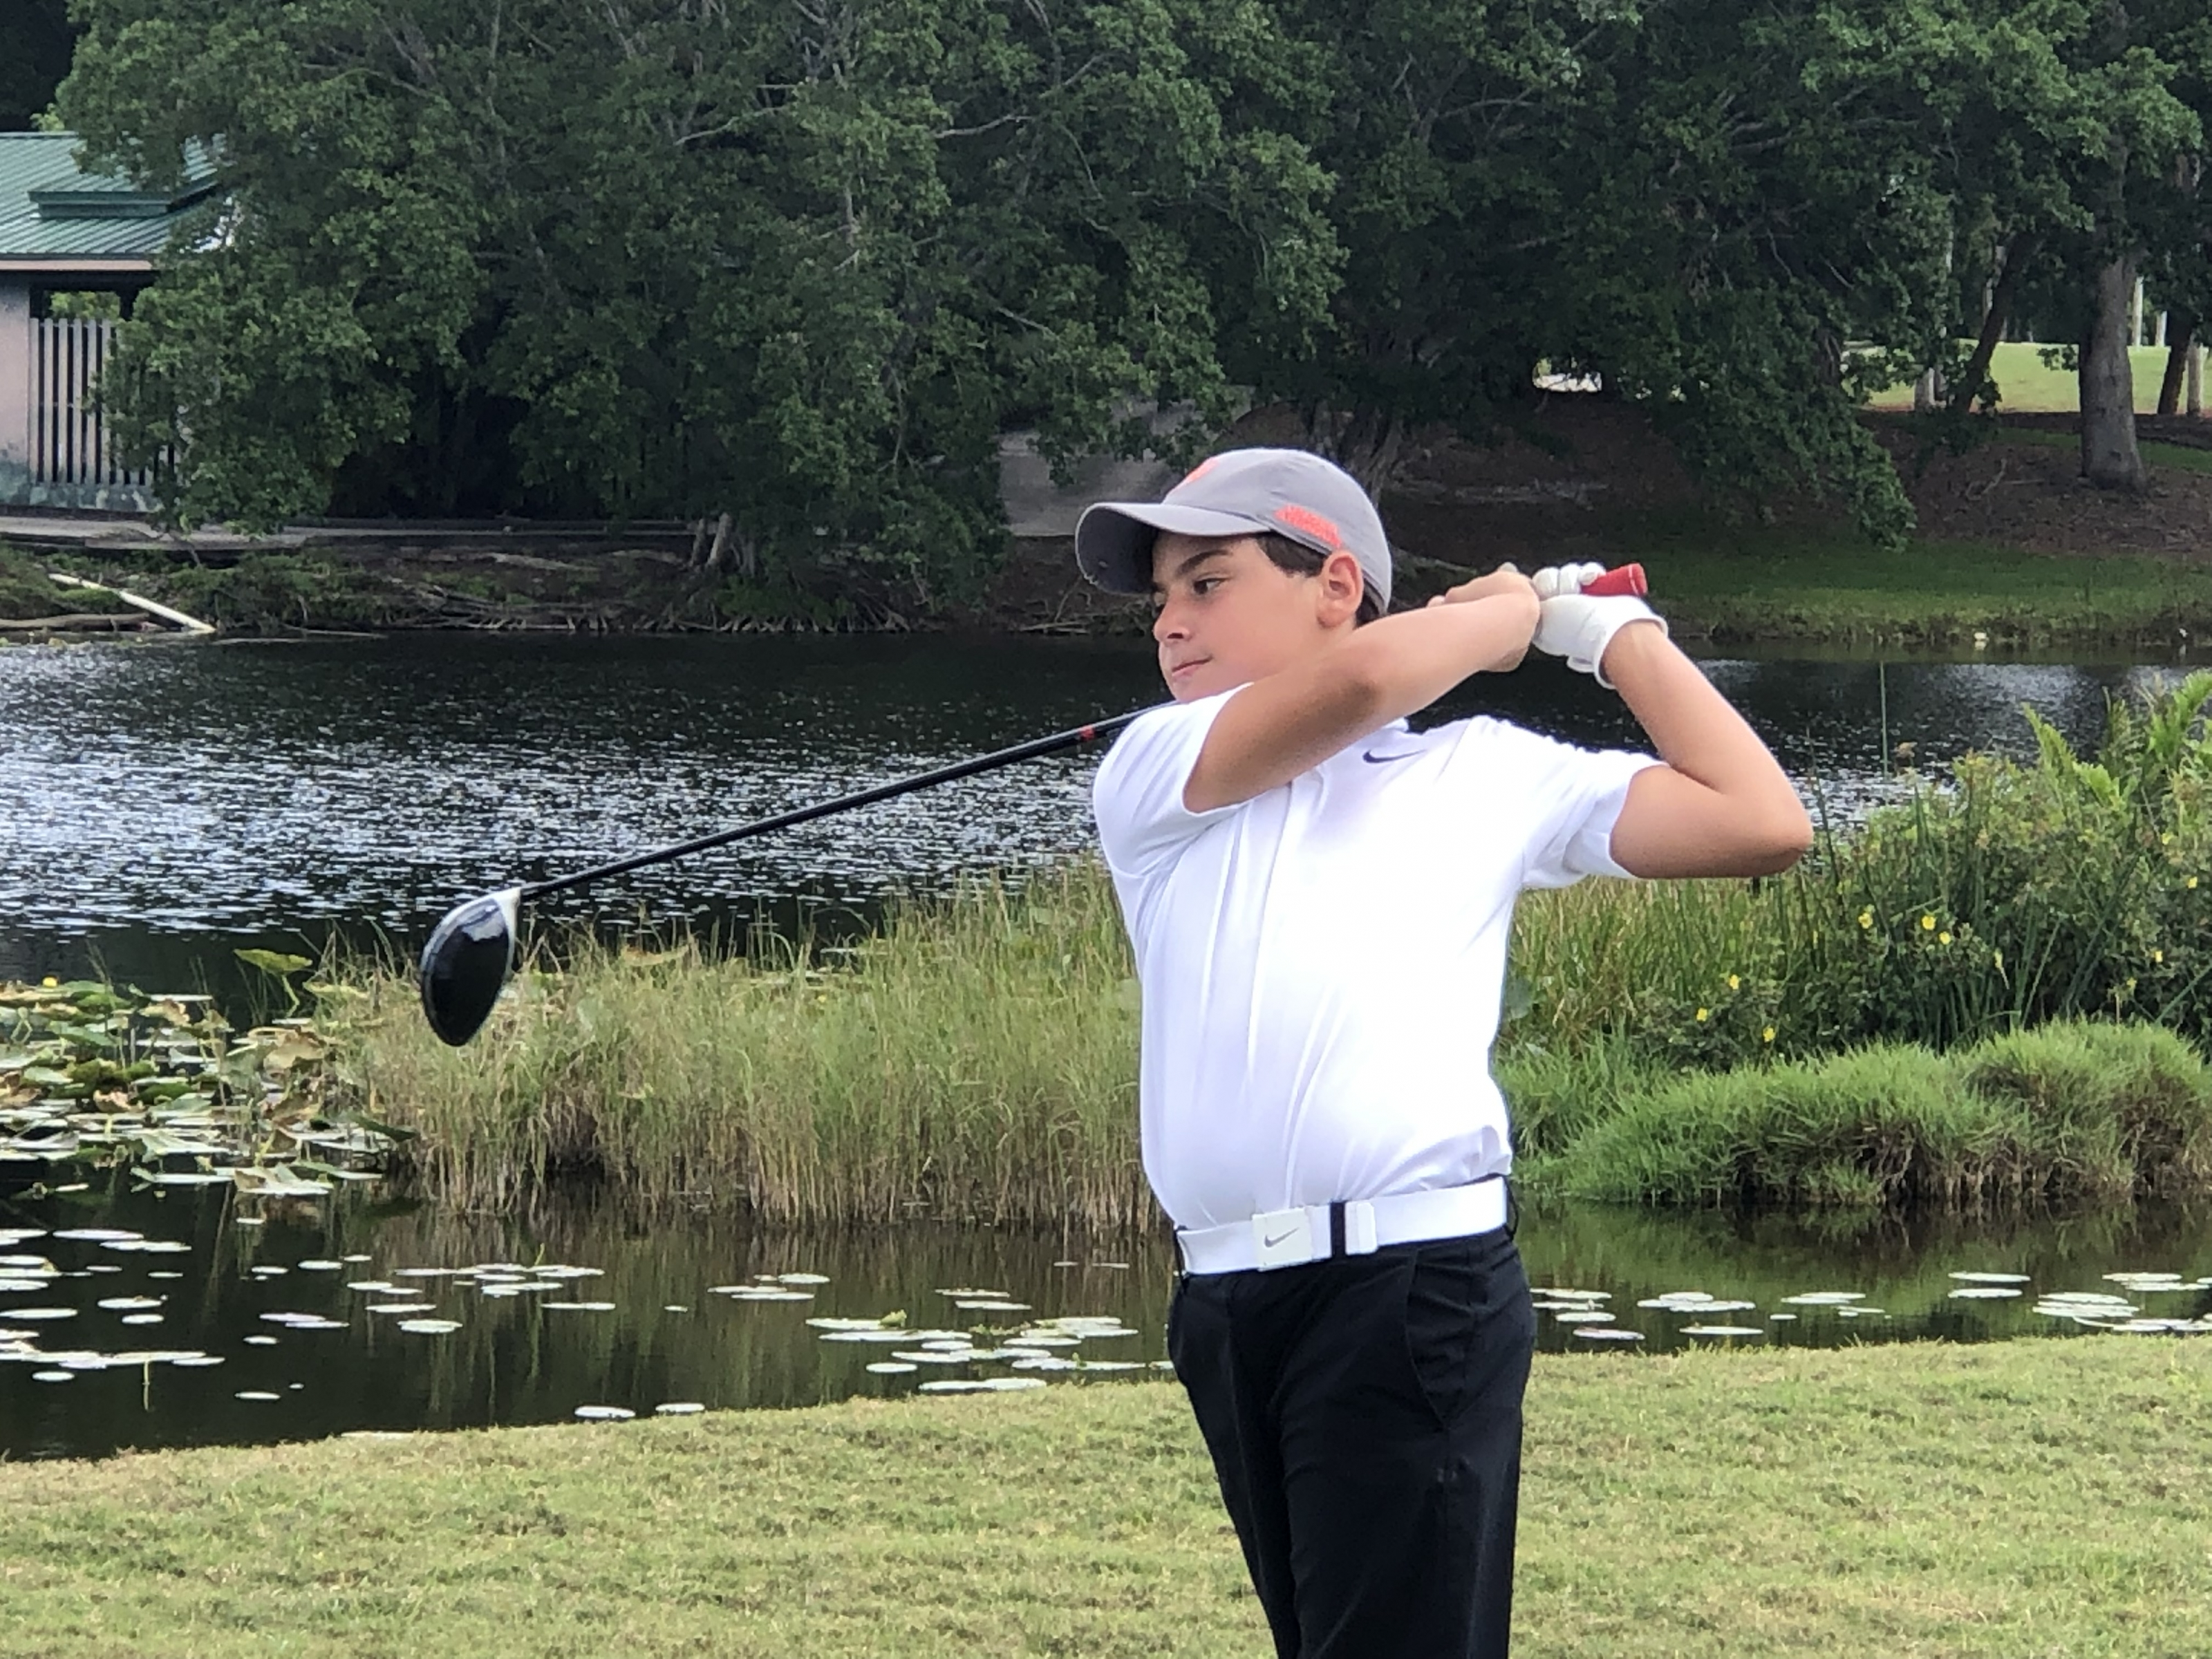 78 Players Competed in the 2nd Prep Tour Event of 2019 at Weston Hills Country Club